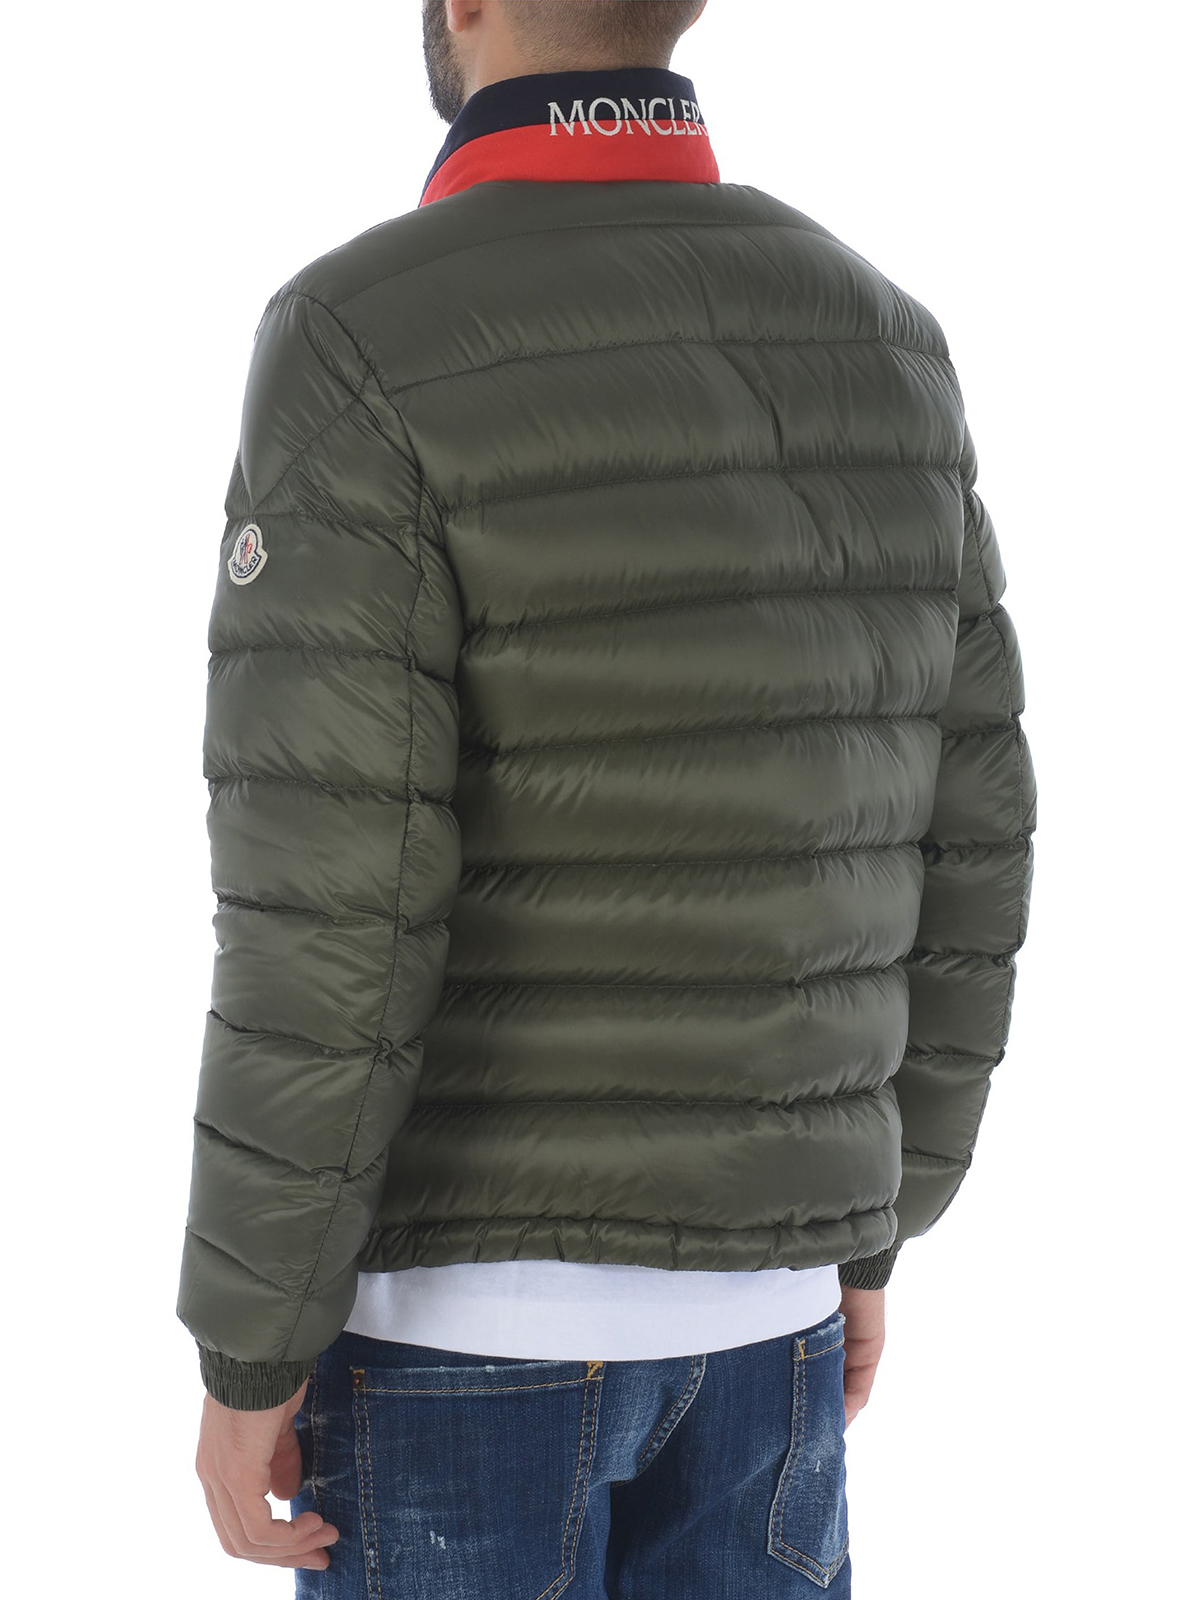 a875d8da854 Moncler - Rodez green down jacket with hidden hood - padded jackets ...